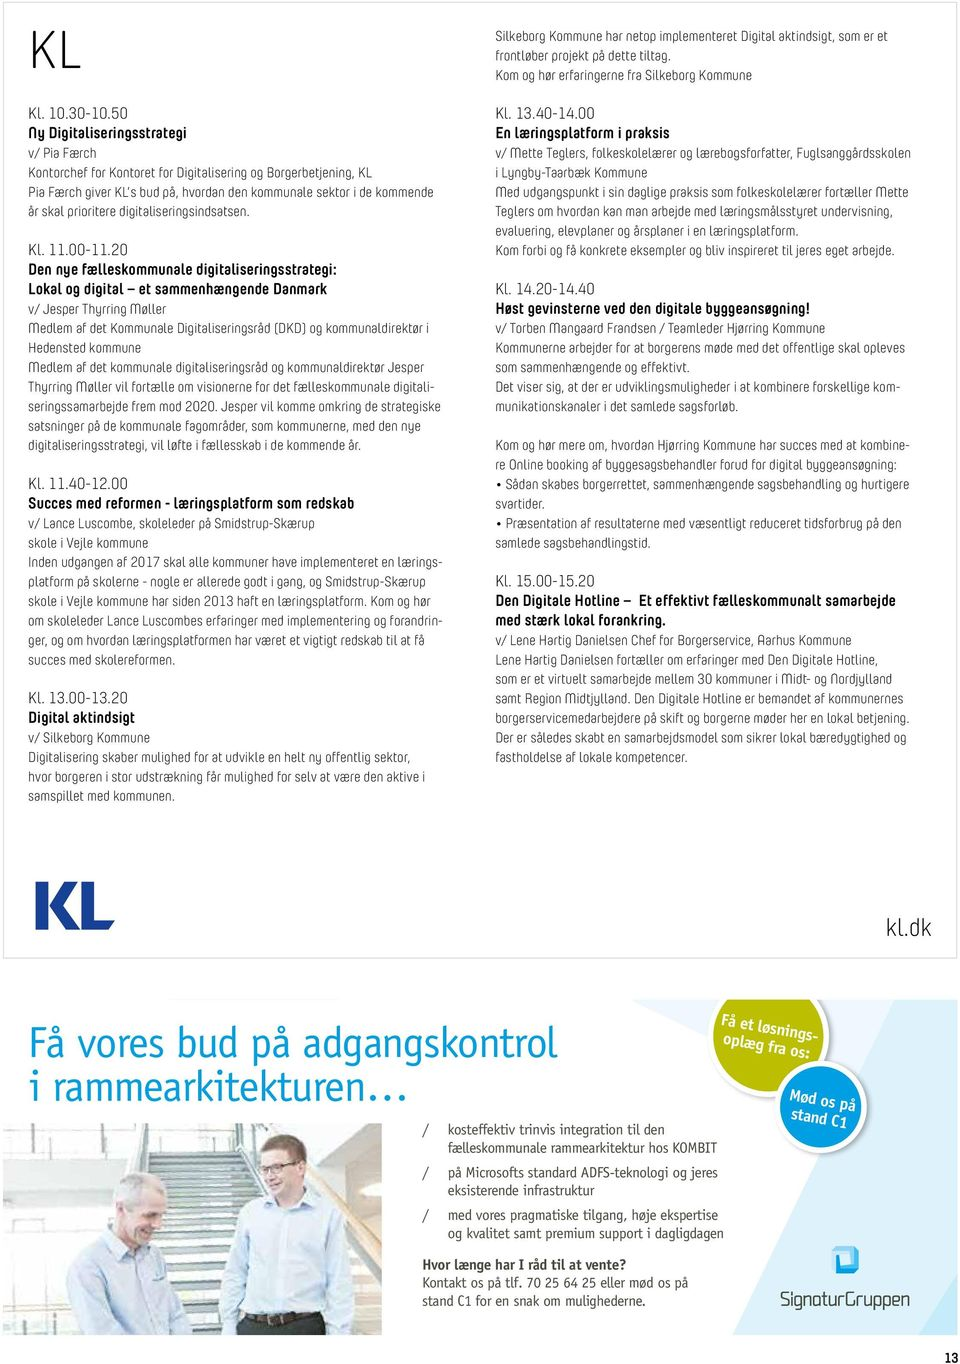 digitaliseringsindsatsen. Kl. 11.00-11.